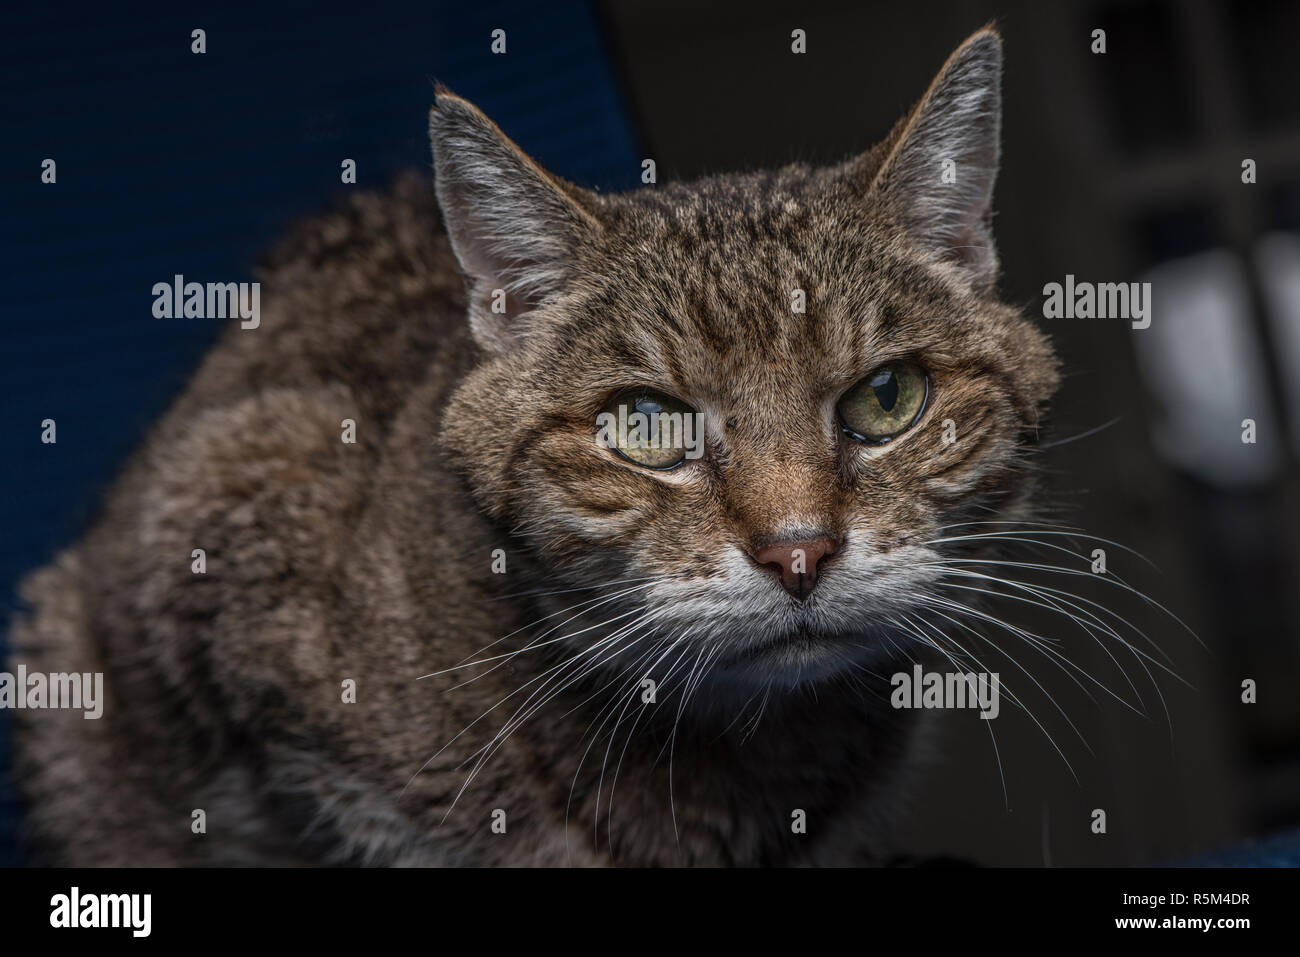 A tabby cat intently looking at something out of the frame of the photo. Stock Photo